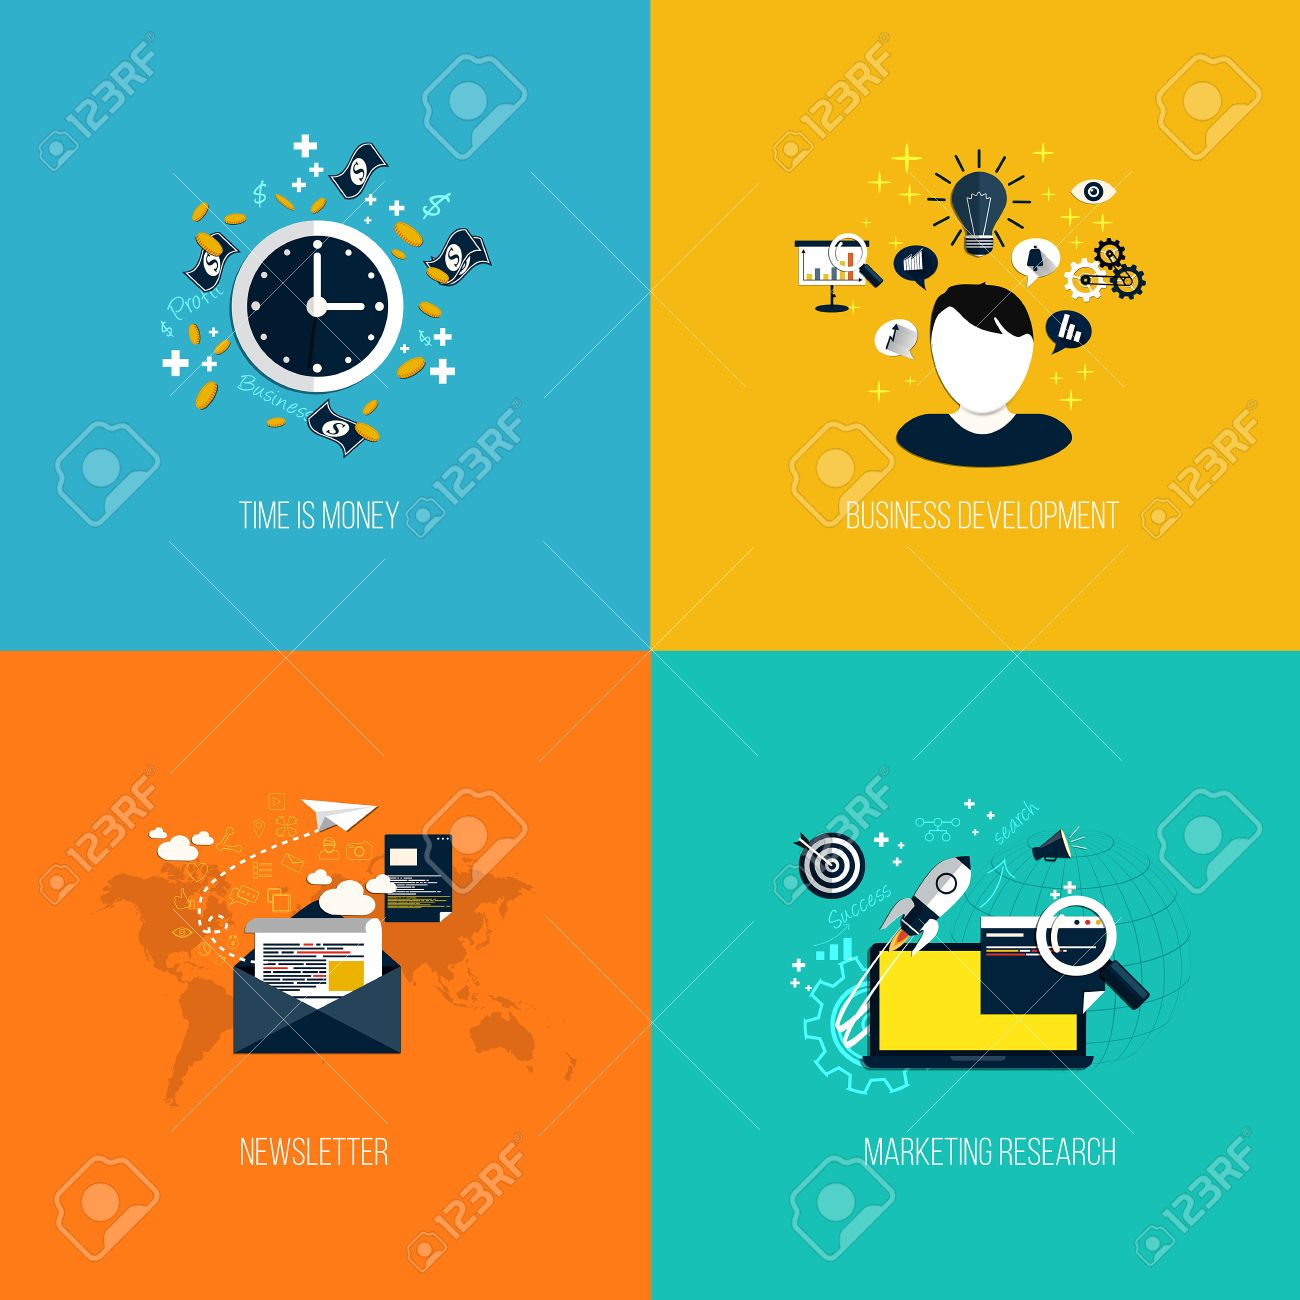 Icons for time is money, business development, newsletter and marketing research. Flat style. Vector Stock Vector - 27392870